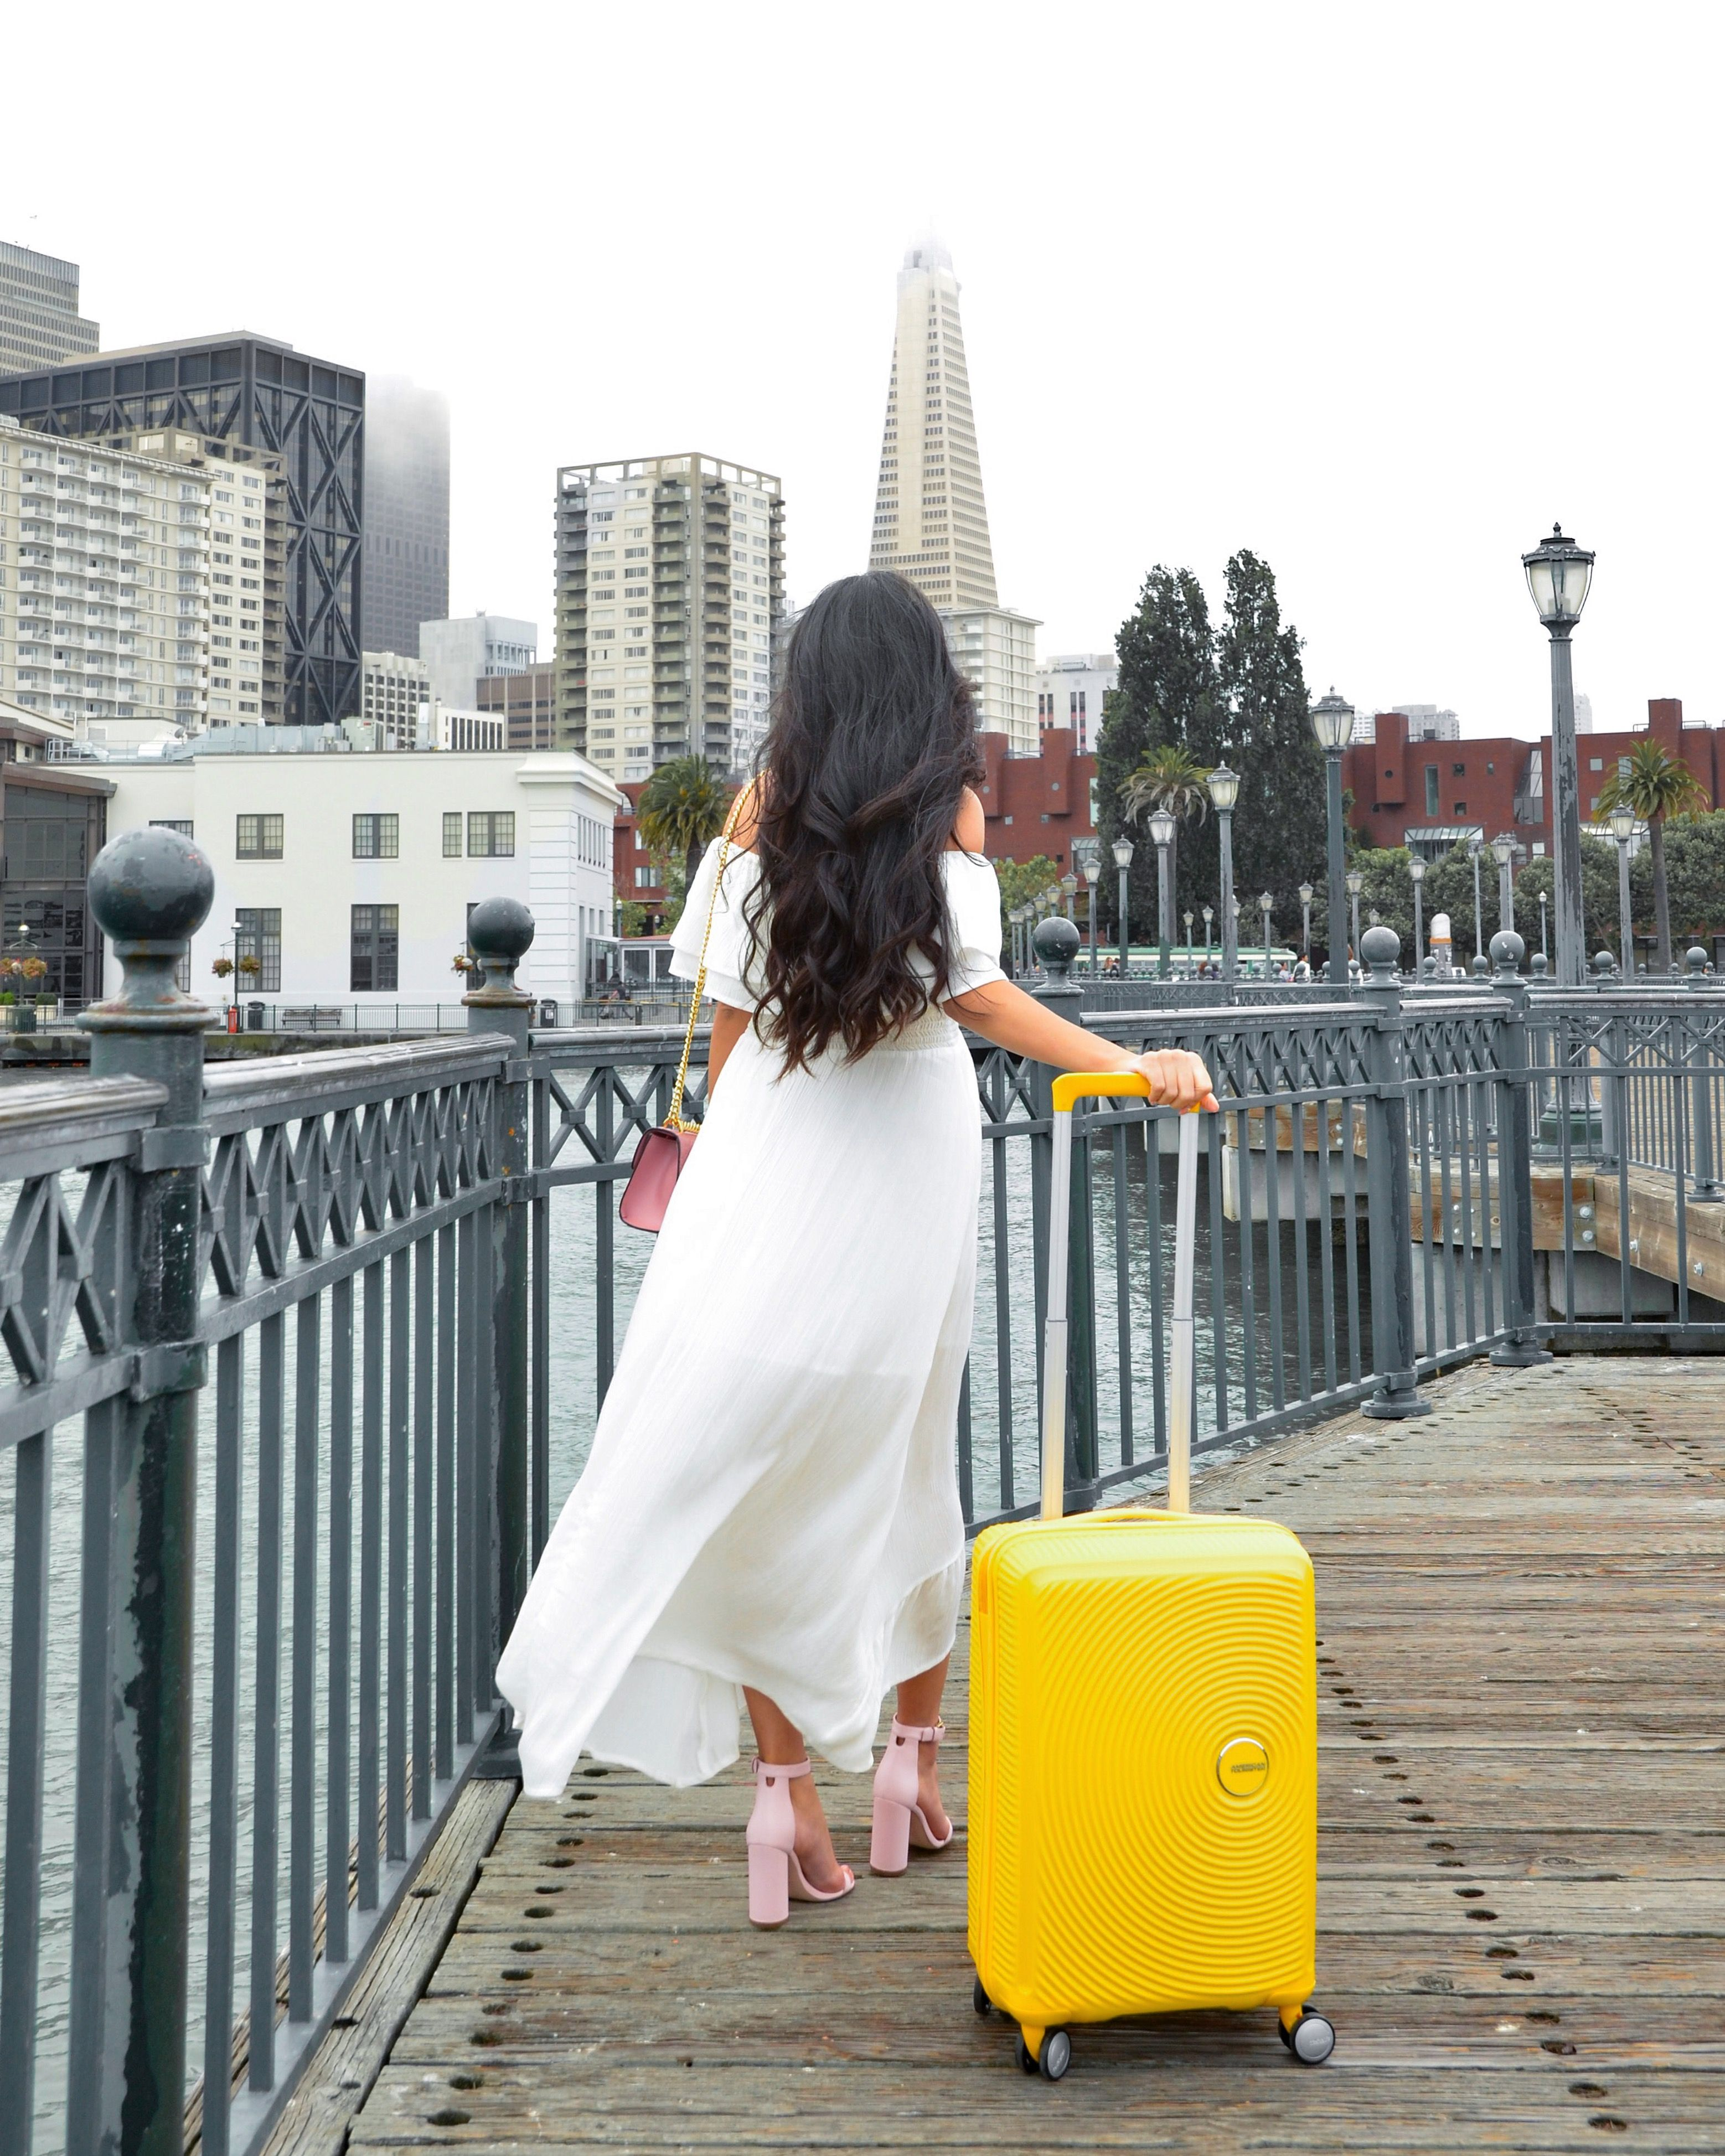 City chic fashion with a pop of color by rachelvogttrends